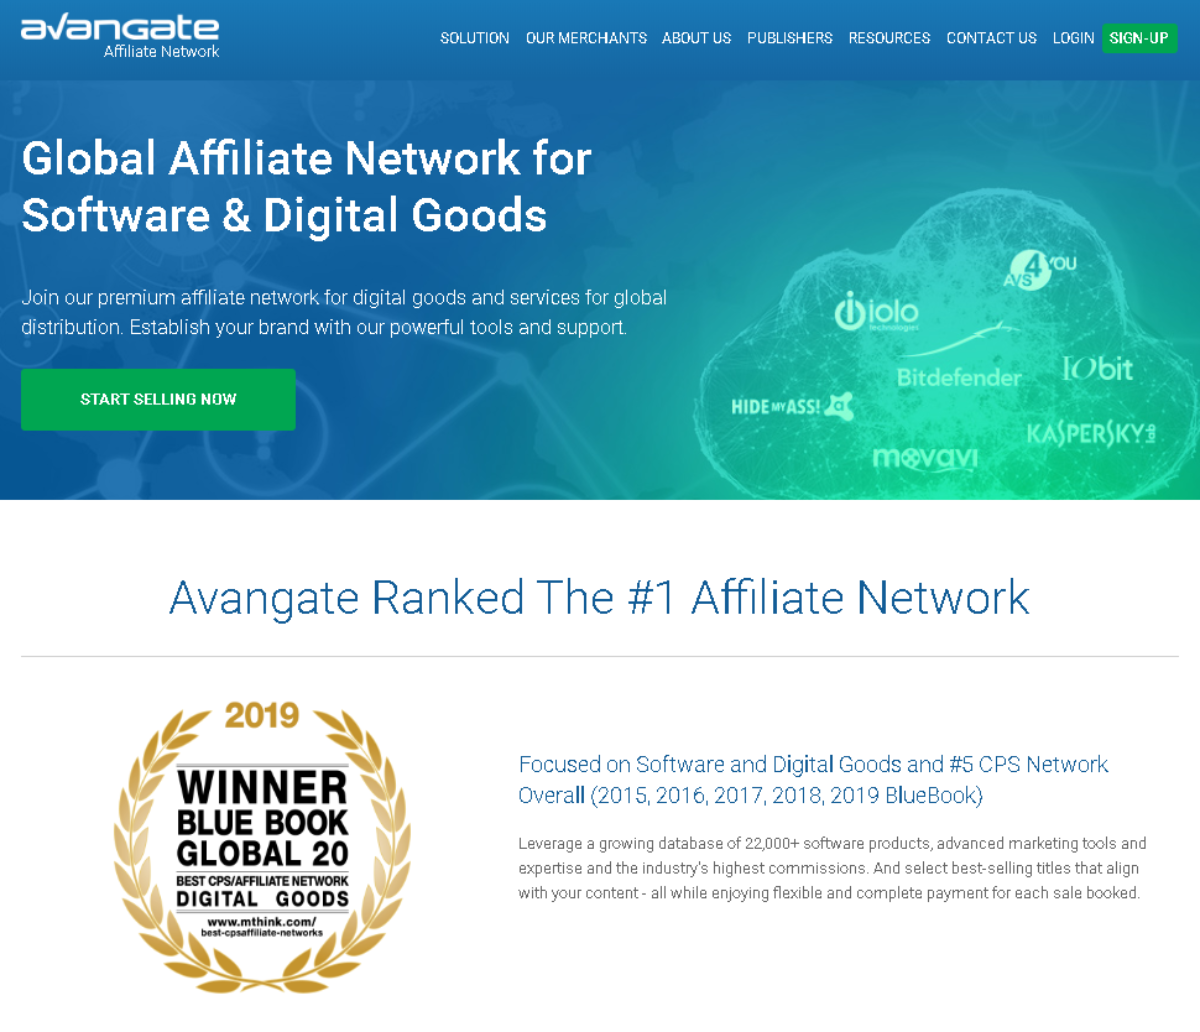 This is a screenshot of the AvangateNetwork.com home page showing they're a leading affiliate network for software and digital goods.